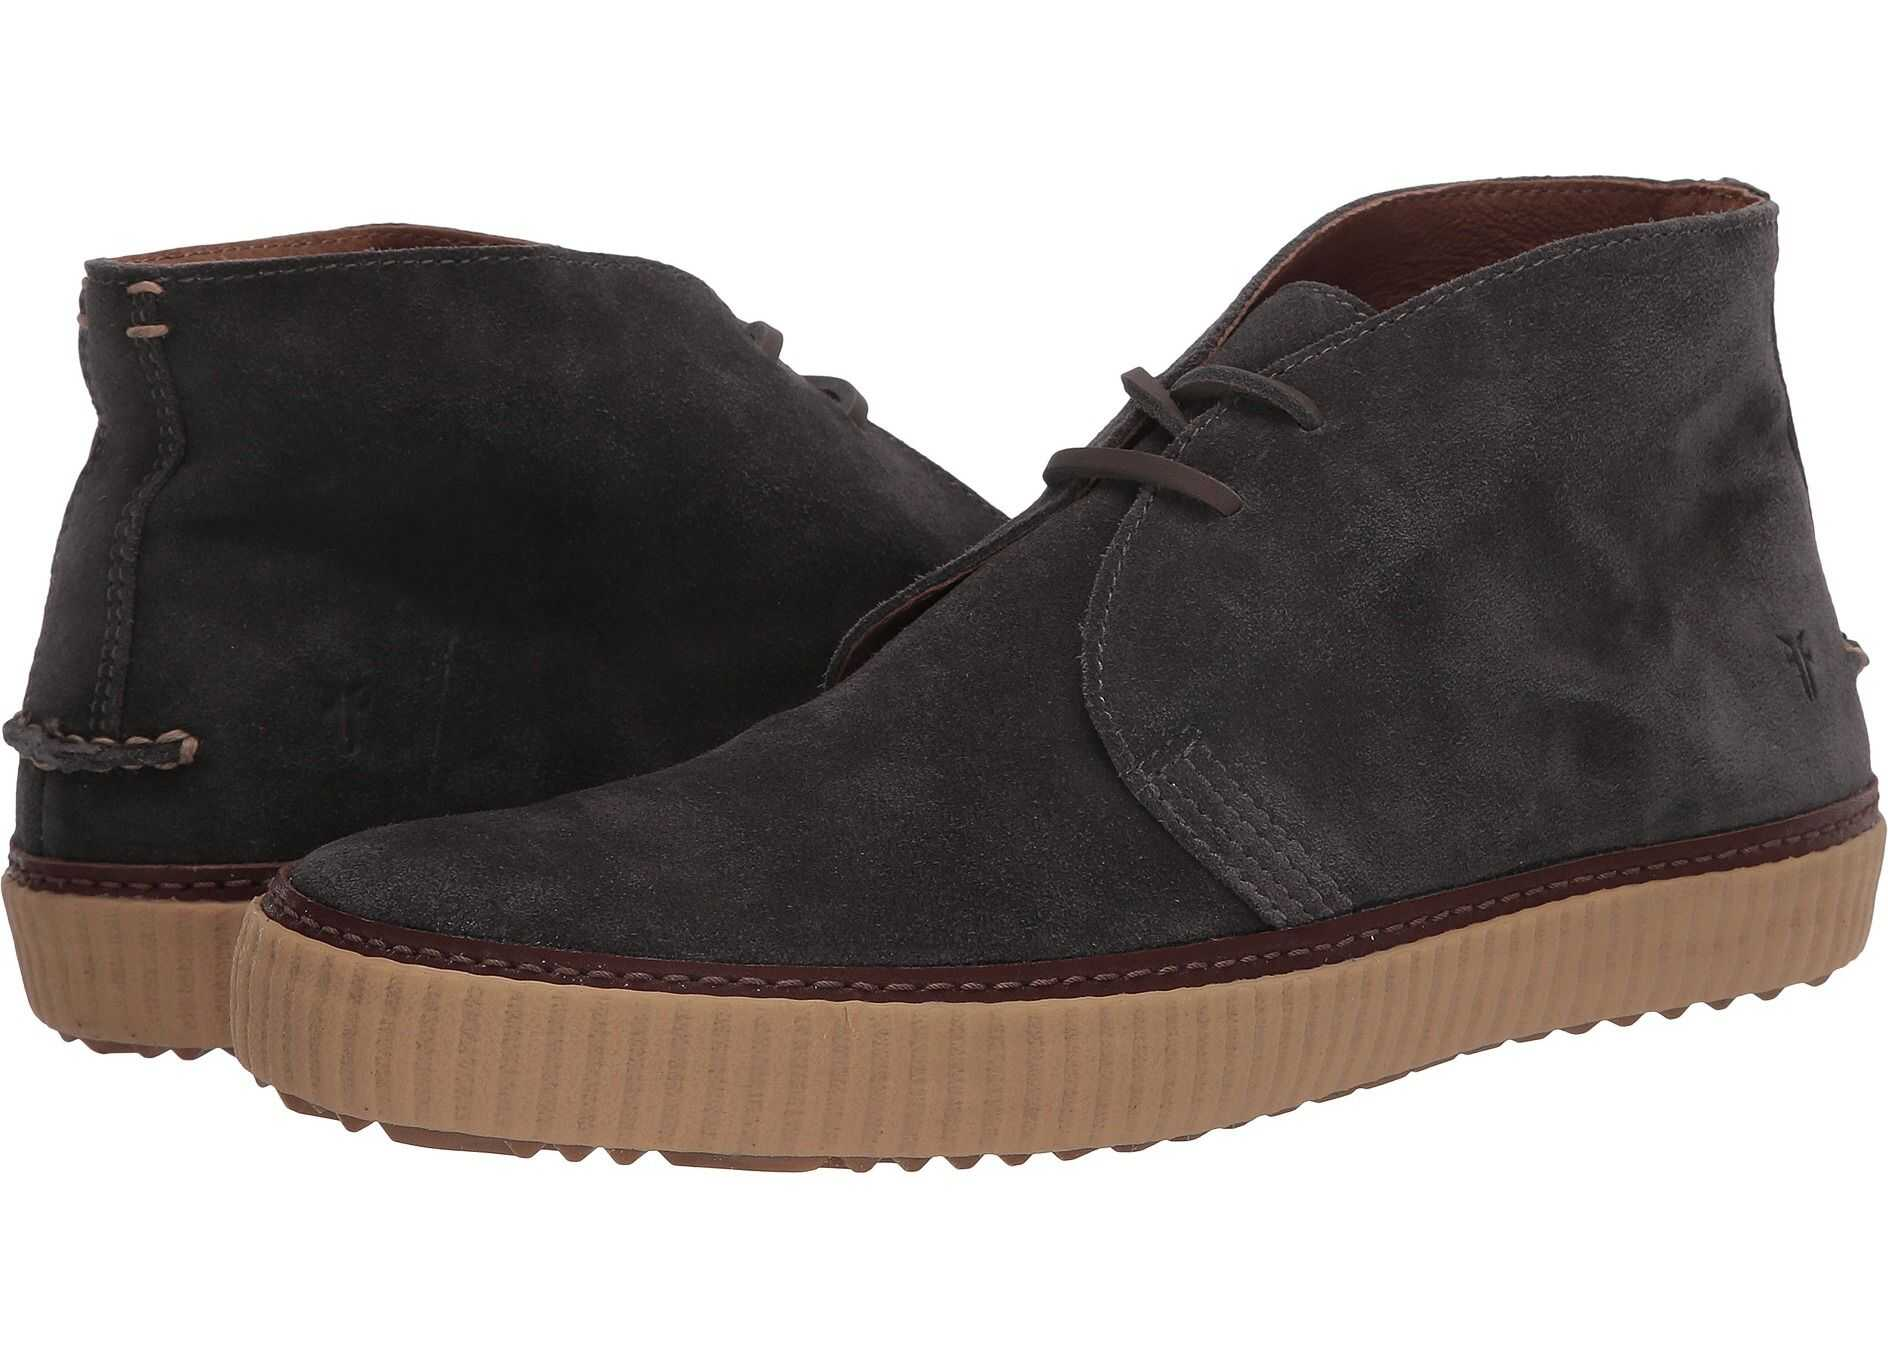 Frye Emory Chukka Grey Washed Waxed Suede